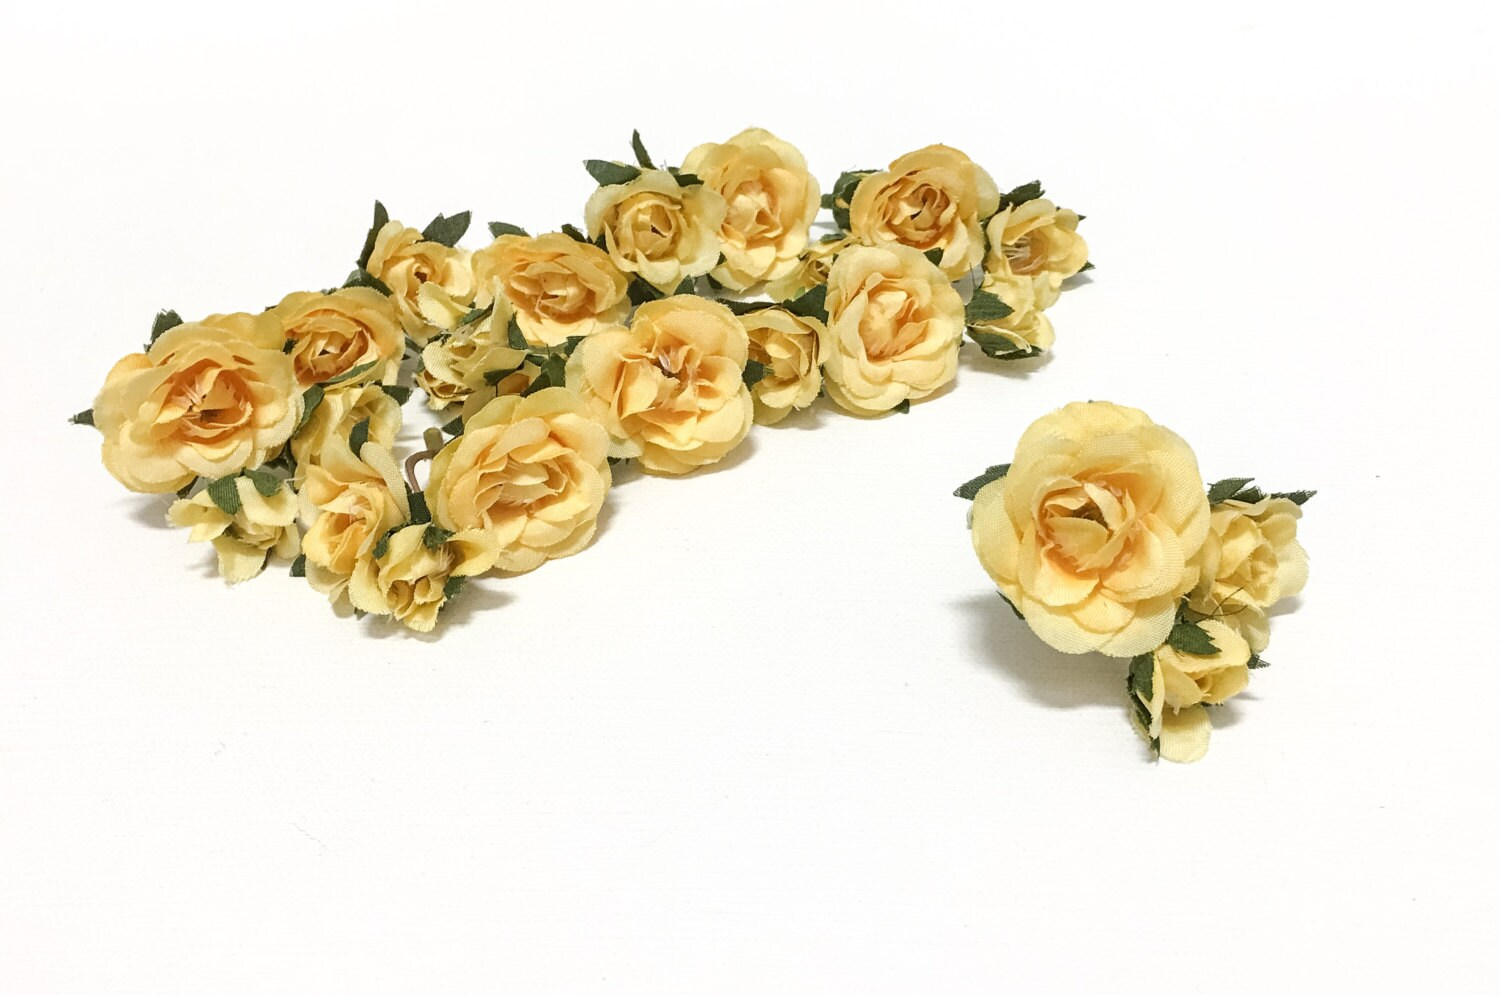 27 Tiny Yellow Mini Roses Artificial Flowers Silk Flowers Etsy